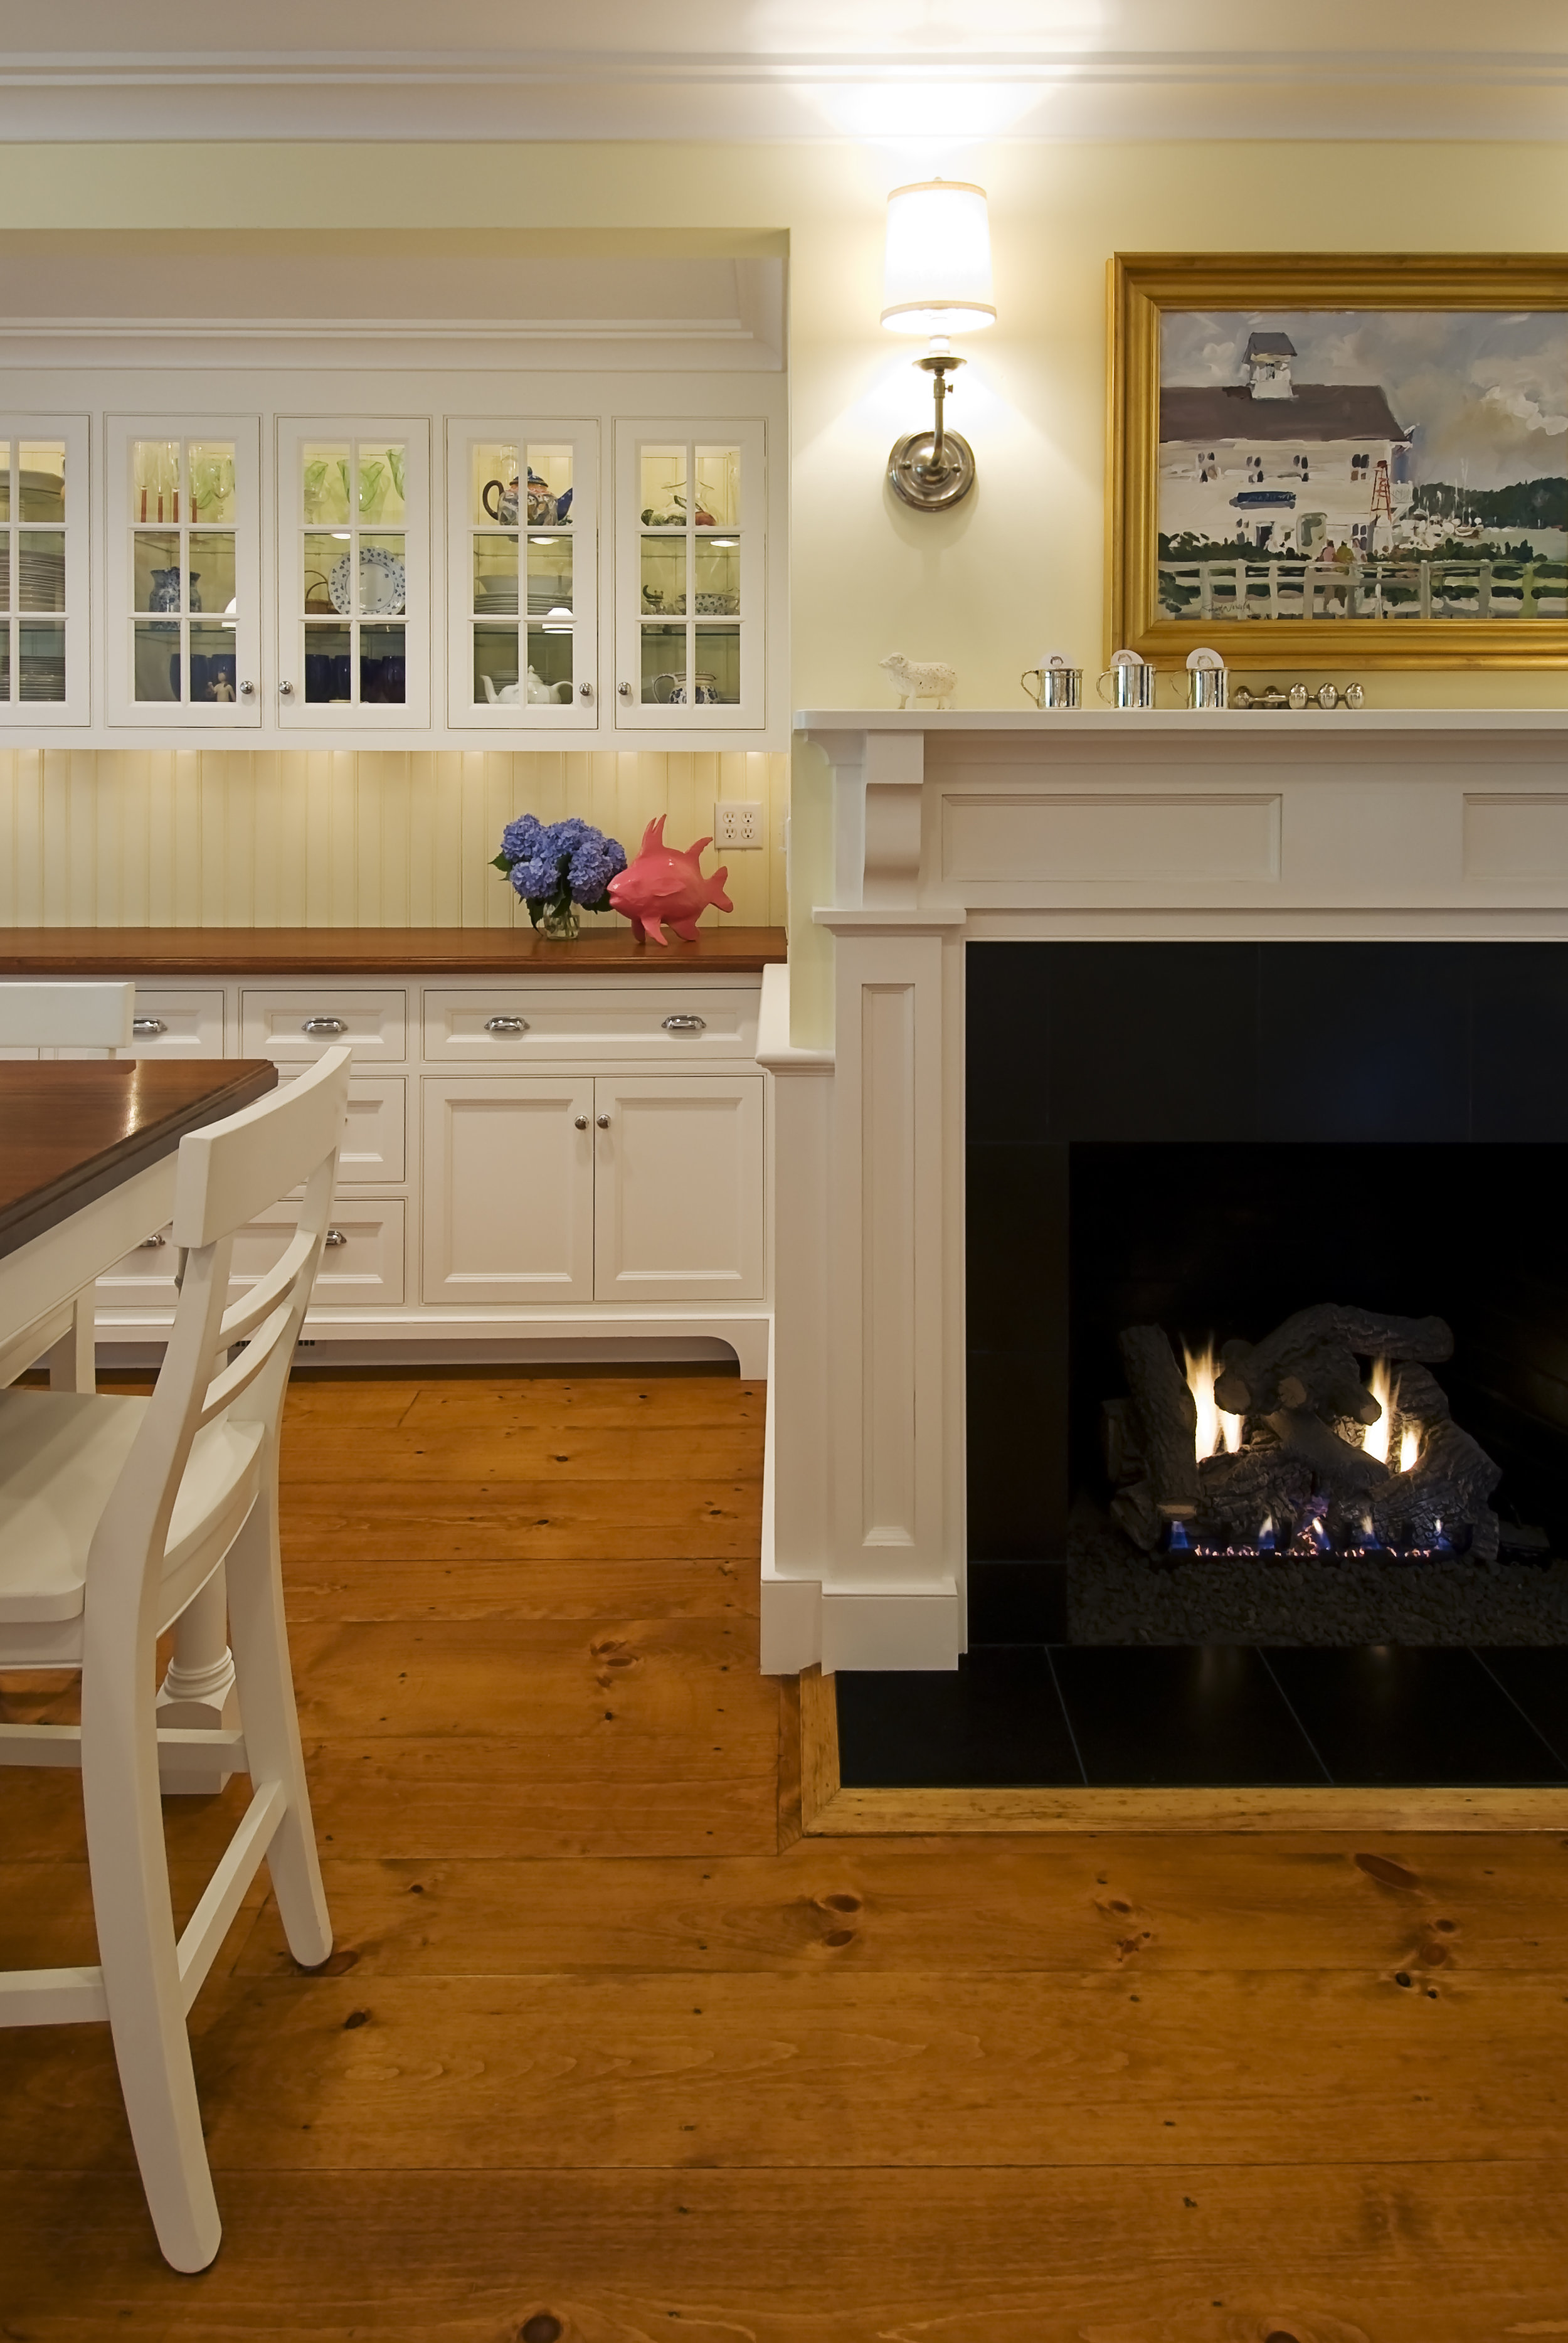 The custom built inset cabinets create an beautiful modern feel to this cozy kitchen. The old fireplace was renovated for a gas and new wide plank wood floors were added to keep the feel of the old farm house.